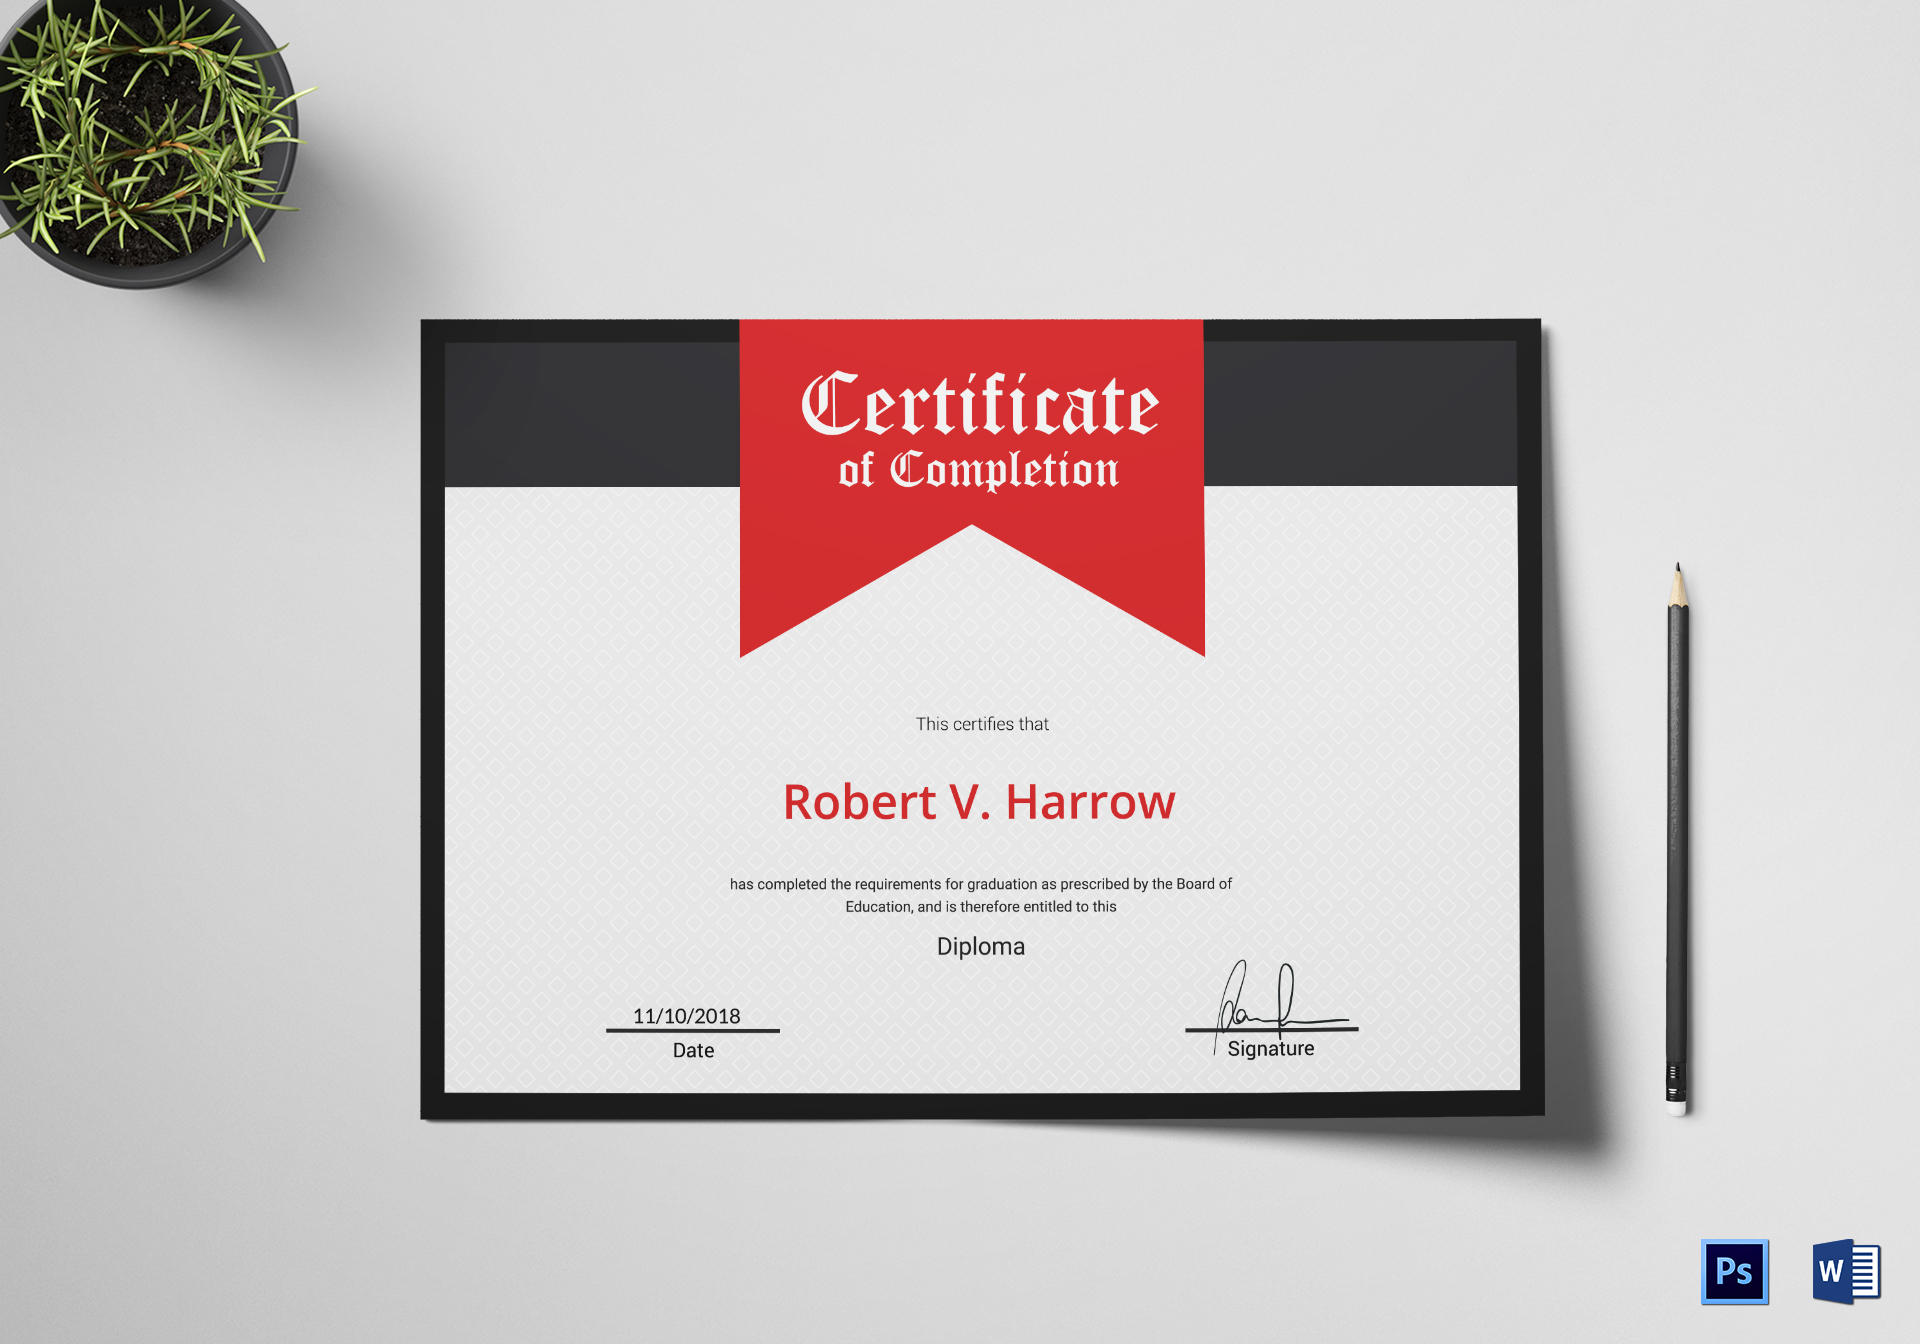 College Graduation Completion Certificate Template